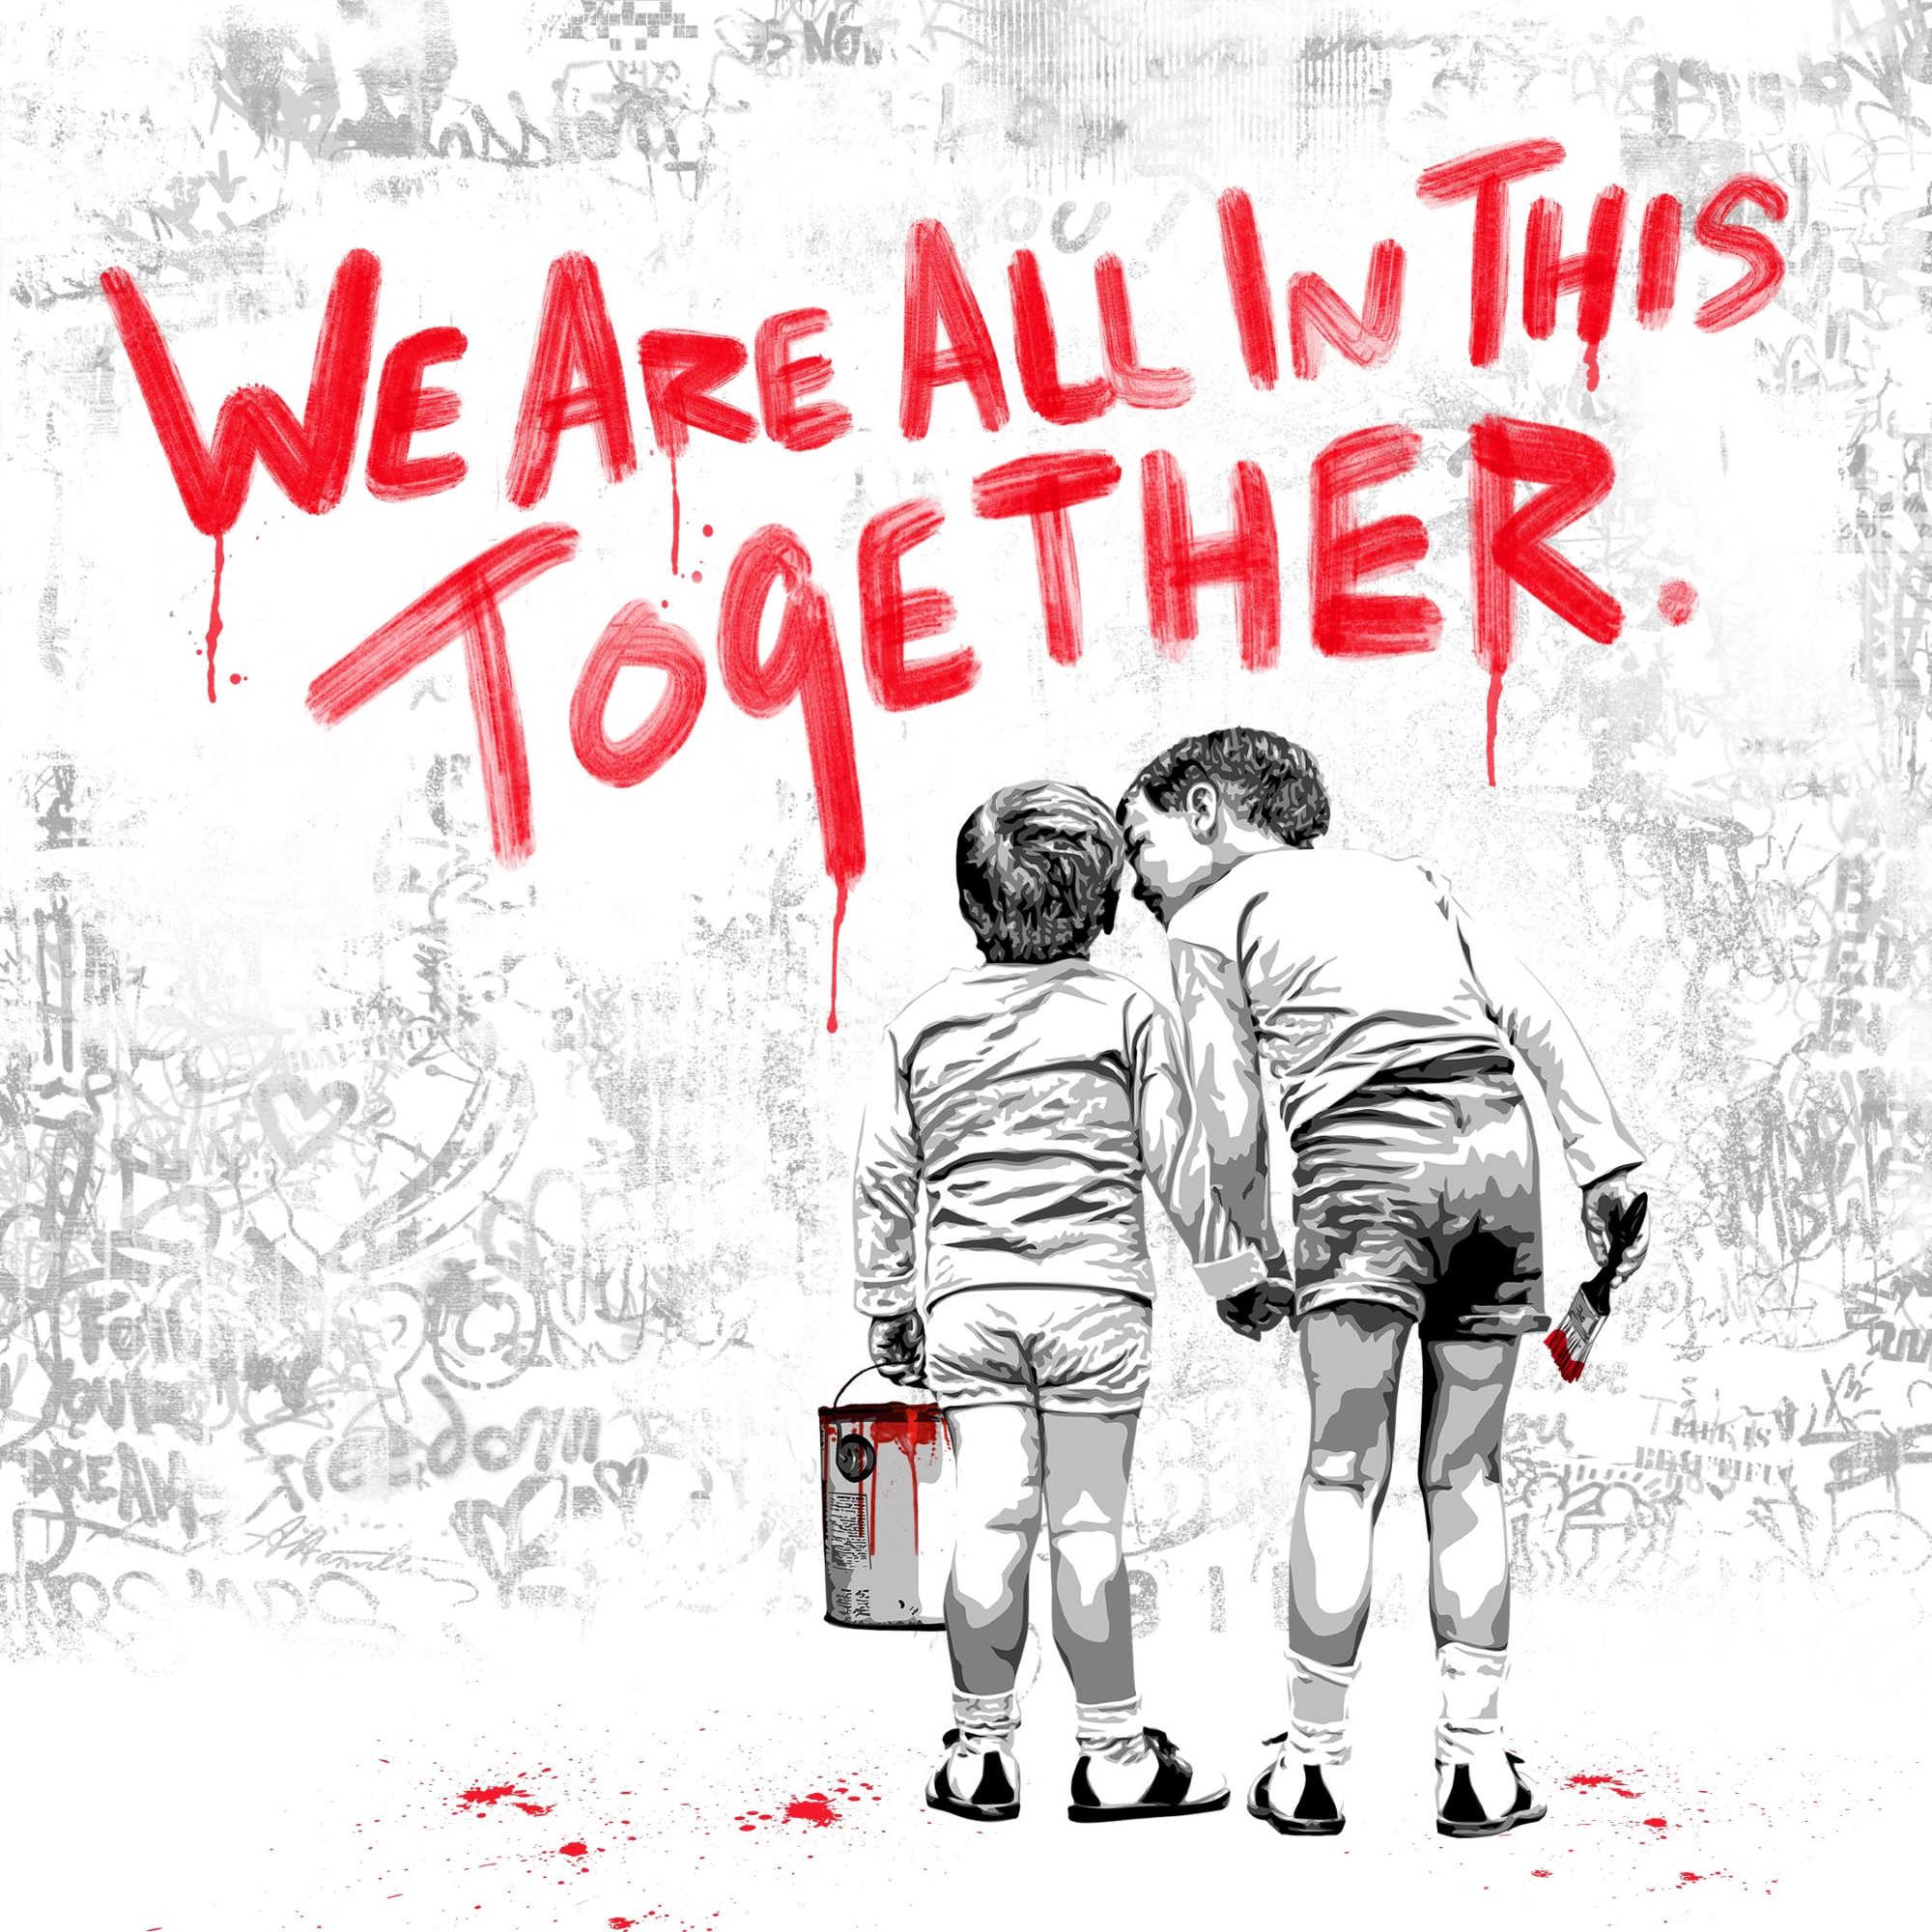 Mr. Brainwash We are all in this together (Red Edition), Siebdruck, signiert, nummeriert, Auflage 75 Stück